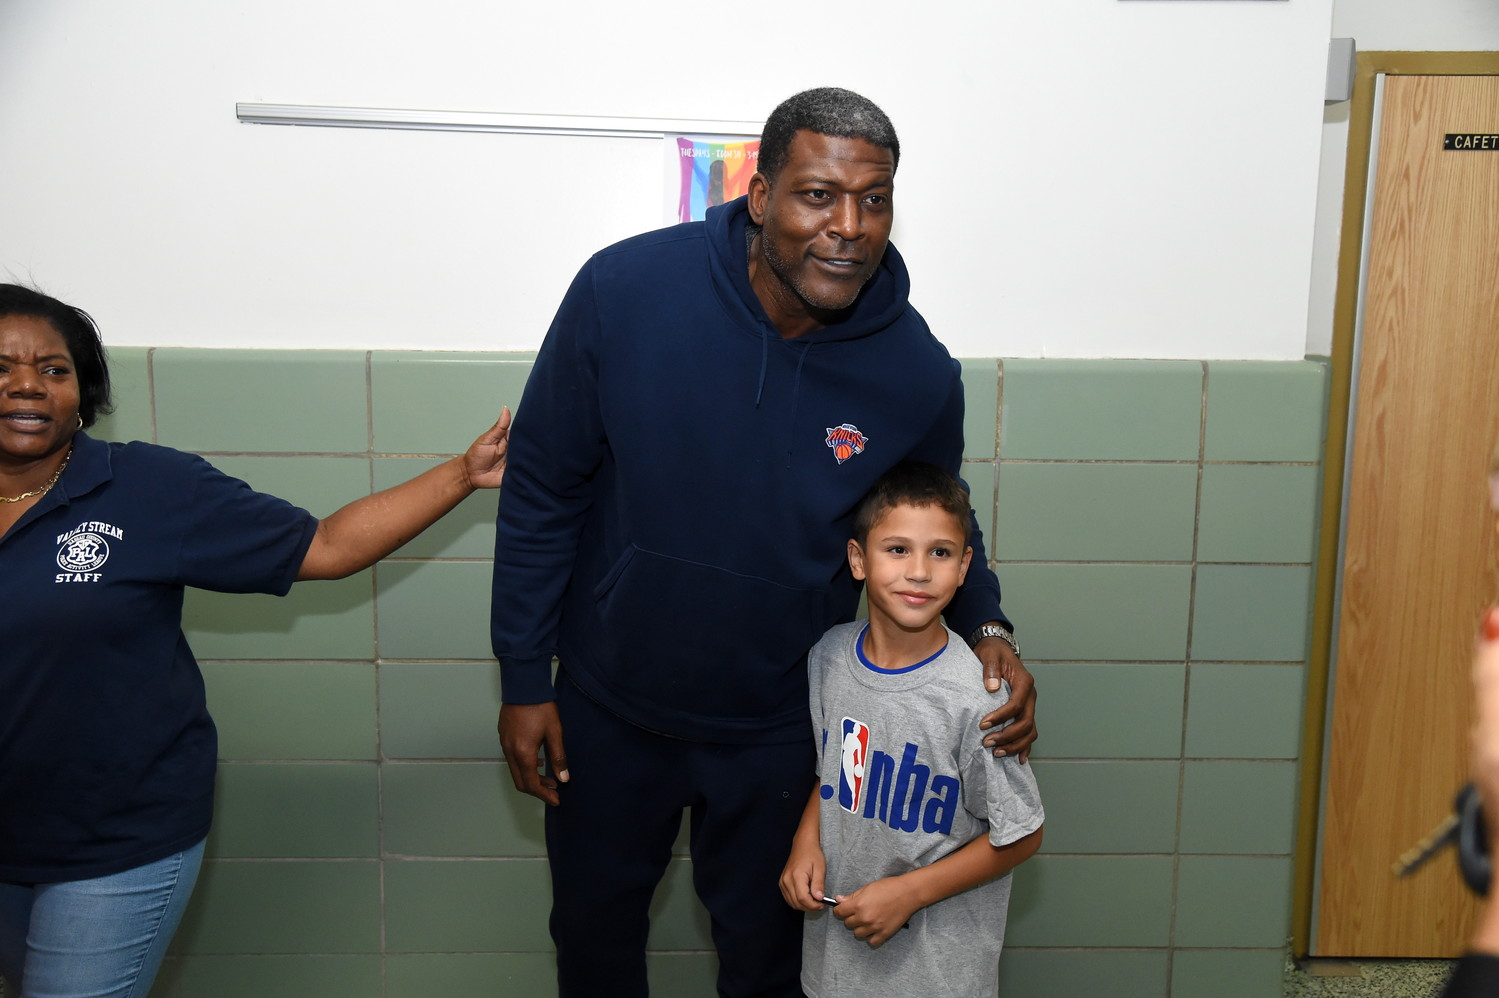 After the basketball clinic was over, kids such as 9-year-old Anthony Cantara lined up to take pictures with Larry Johnson.